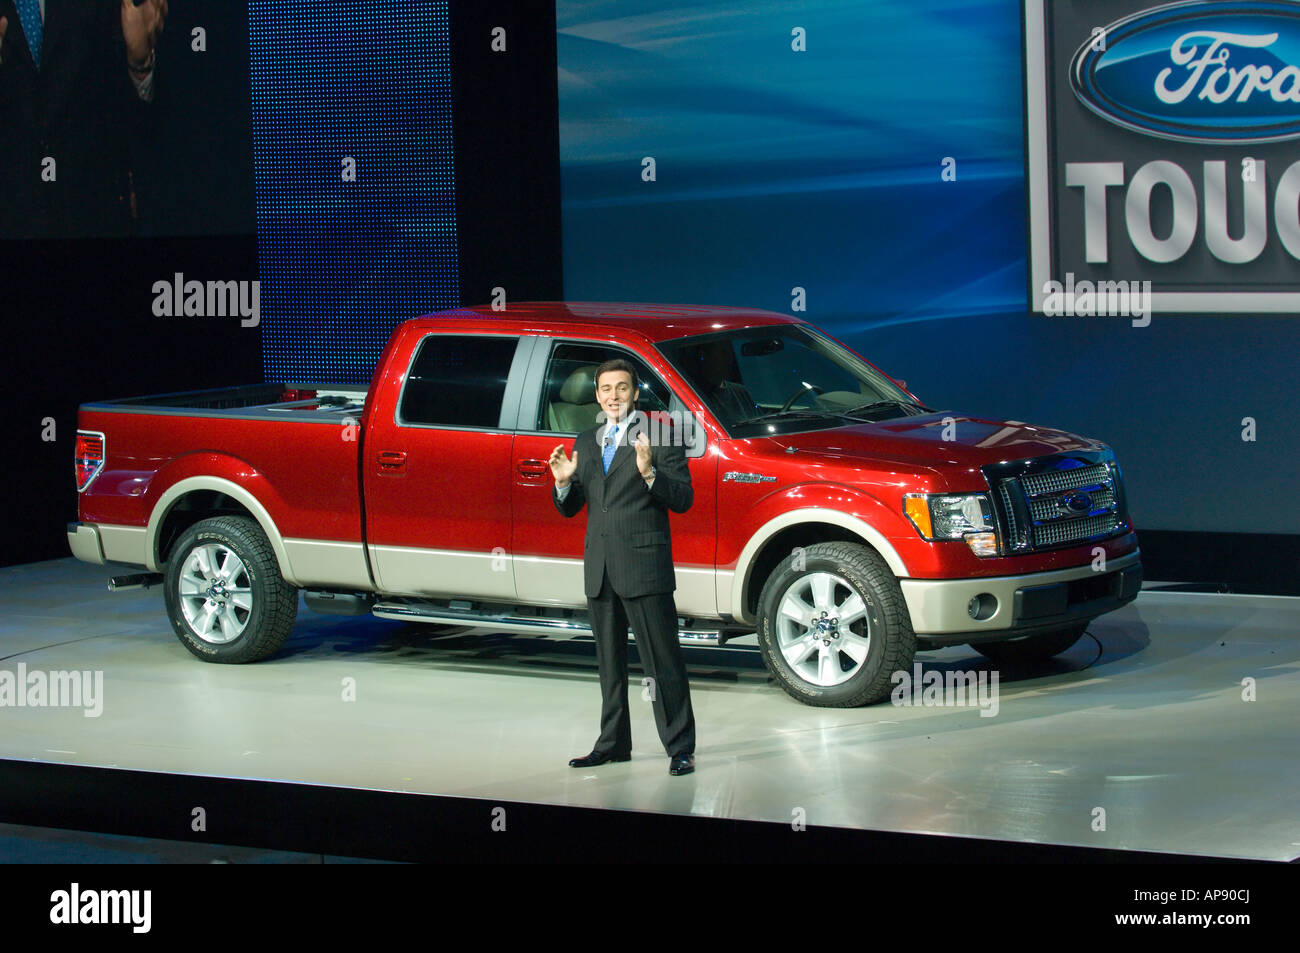 F 150 stock photos f 150 stock images alamy for The ford motor company